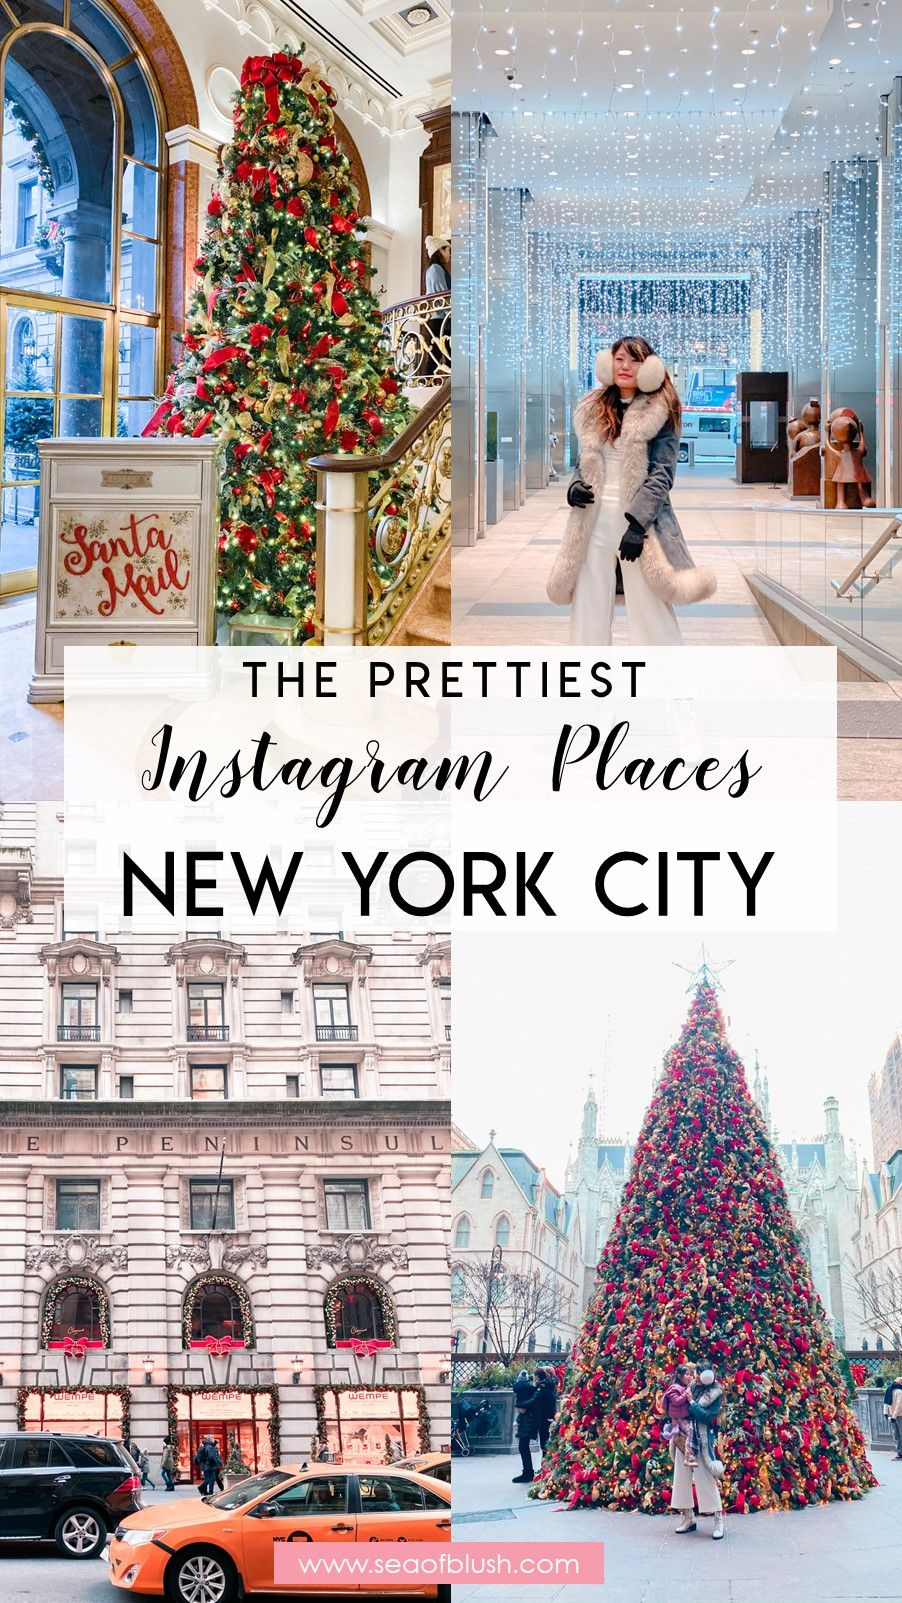 Things To Do On Christmas Day In Nyc 2020 Experience all the Christmas Feels in New York City in 2020 | New